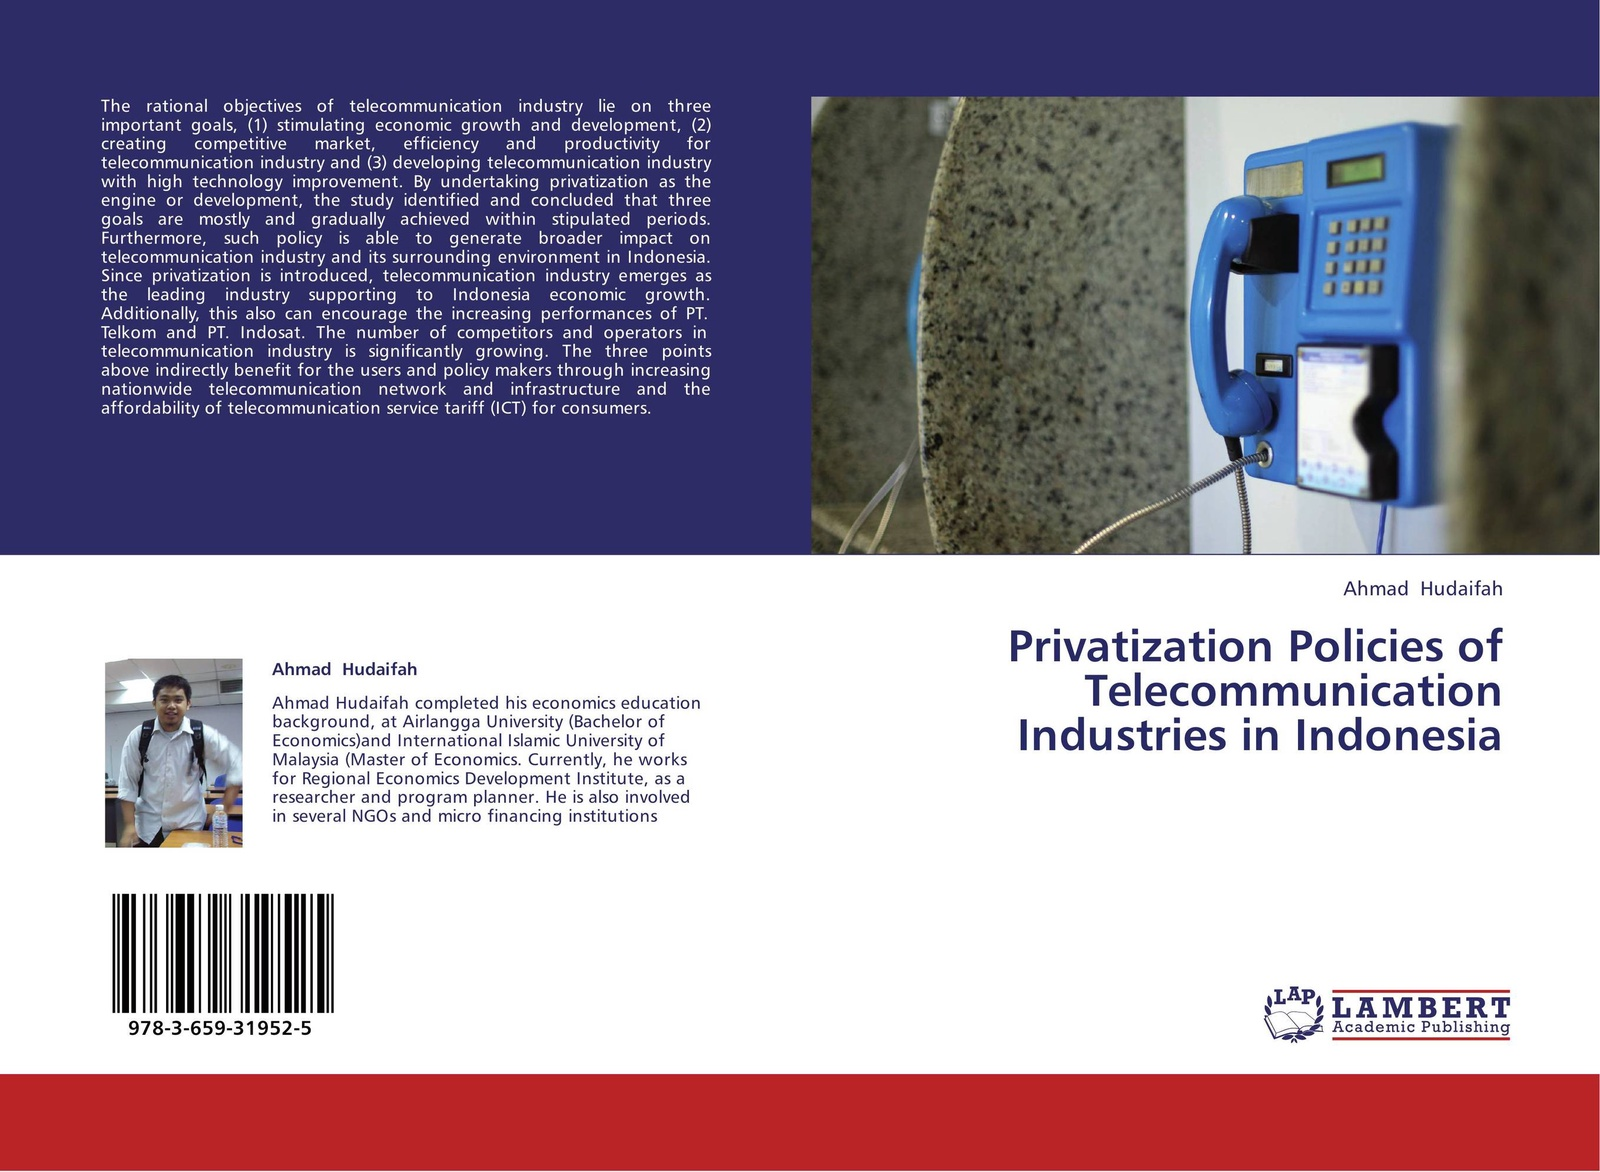 Ahmad Hudaifah Privatization Policies of Telecommunication Industries in Indonesia development of small scale food industry cluster in indonesia